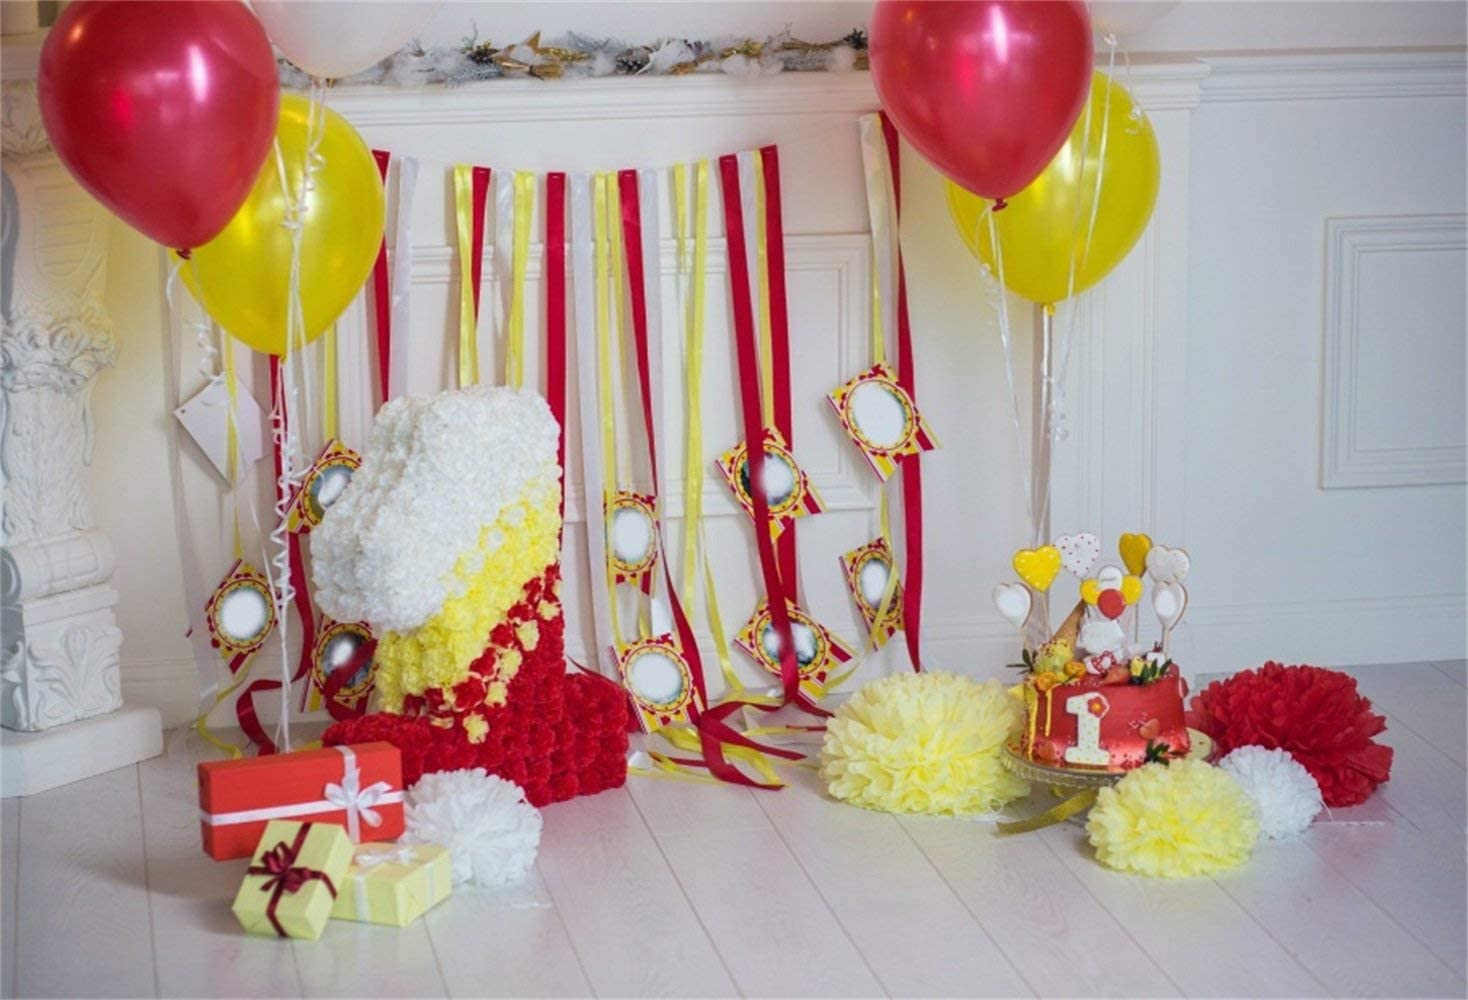 Indoor Babys 1st Birthday Photo Booth Backdrop 10x7ft Vinyl Red Yellow Balloons Floral Number1 Tassels Paper Poms Wooden Floor Photography Background Dessert Table Banner Cake Smash